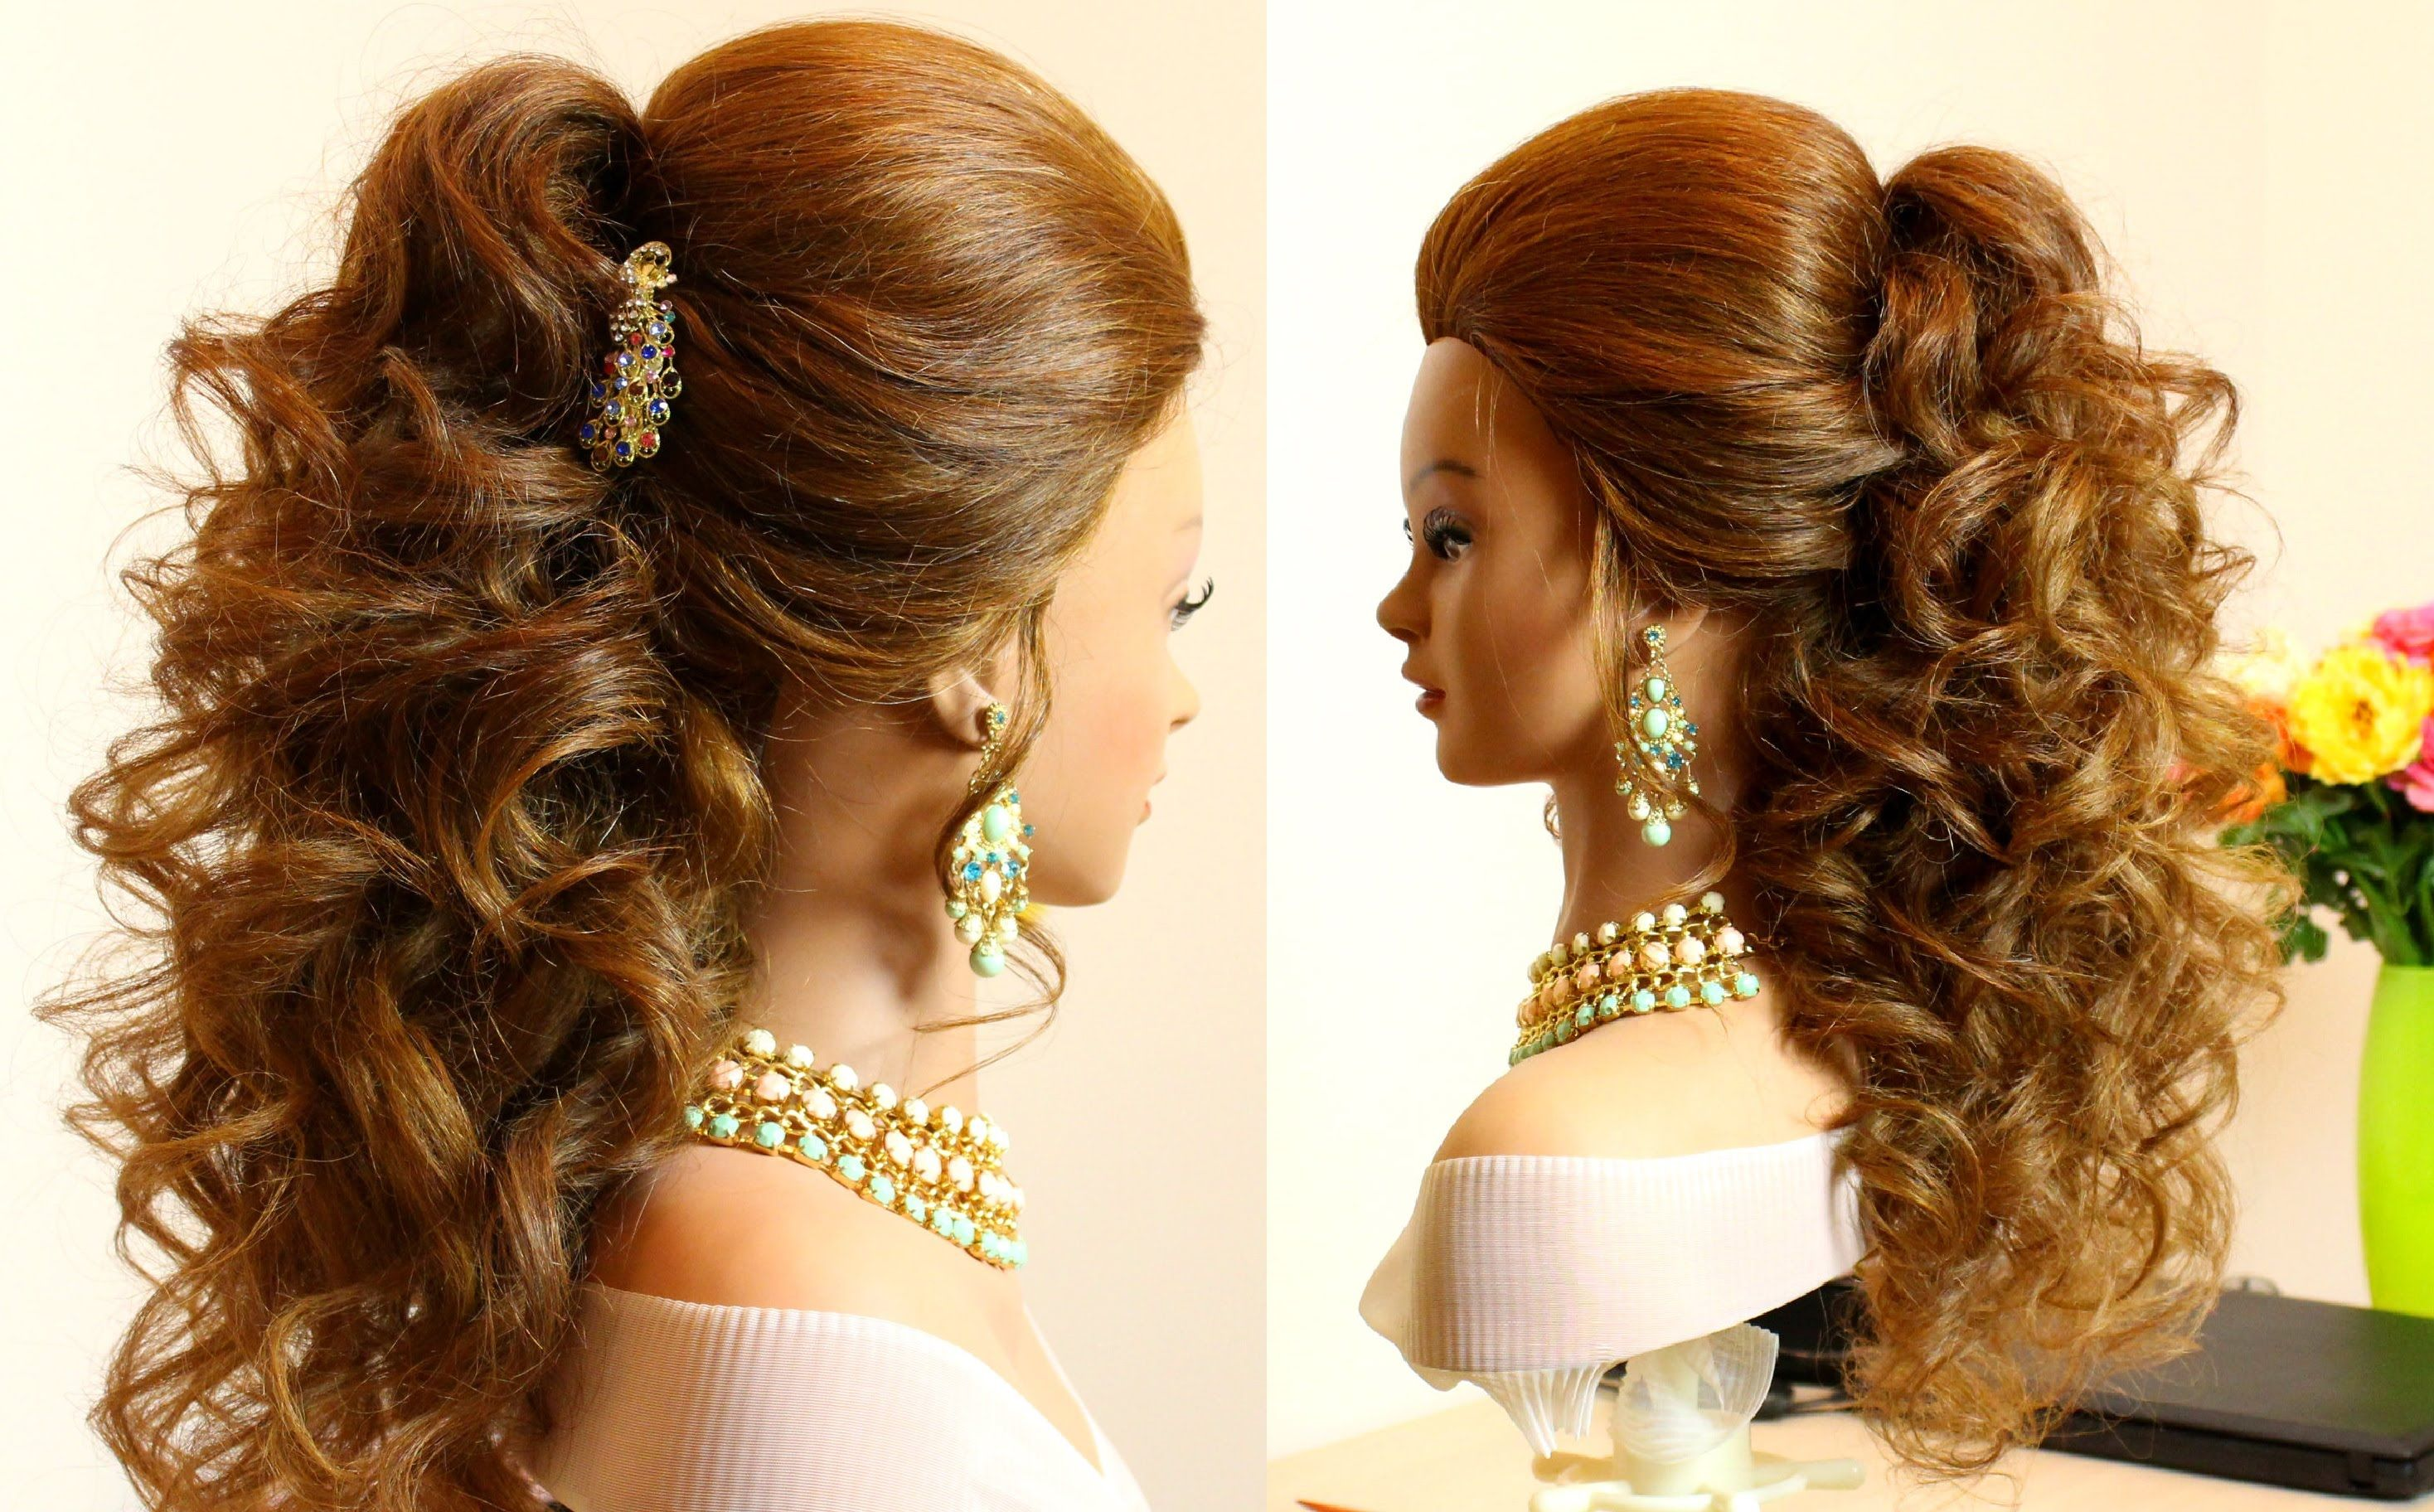 prom bridal curly hairstyle for long hair tutorial | hair